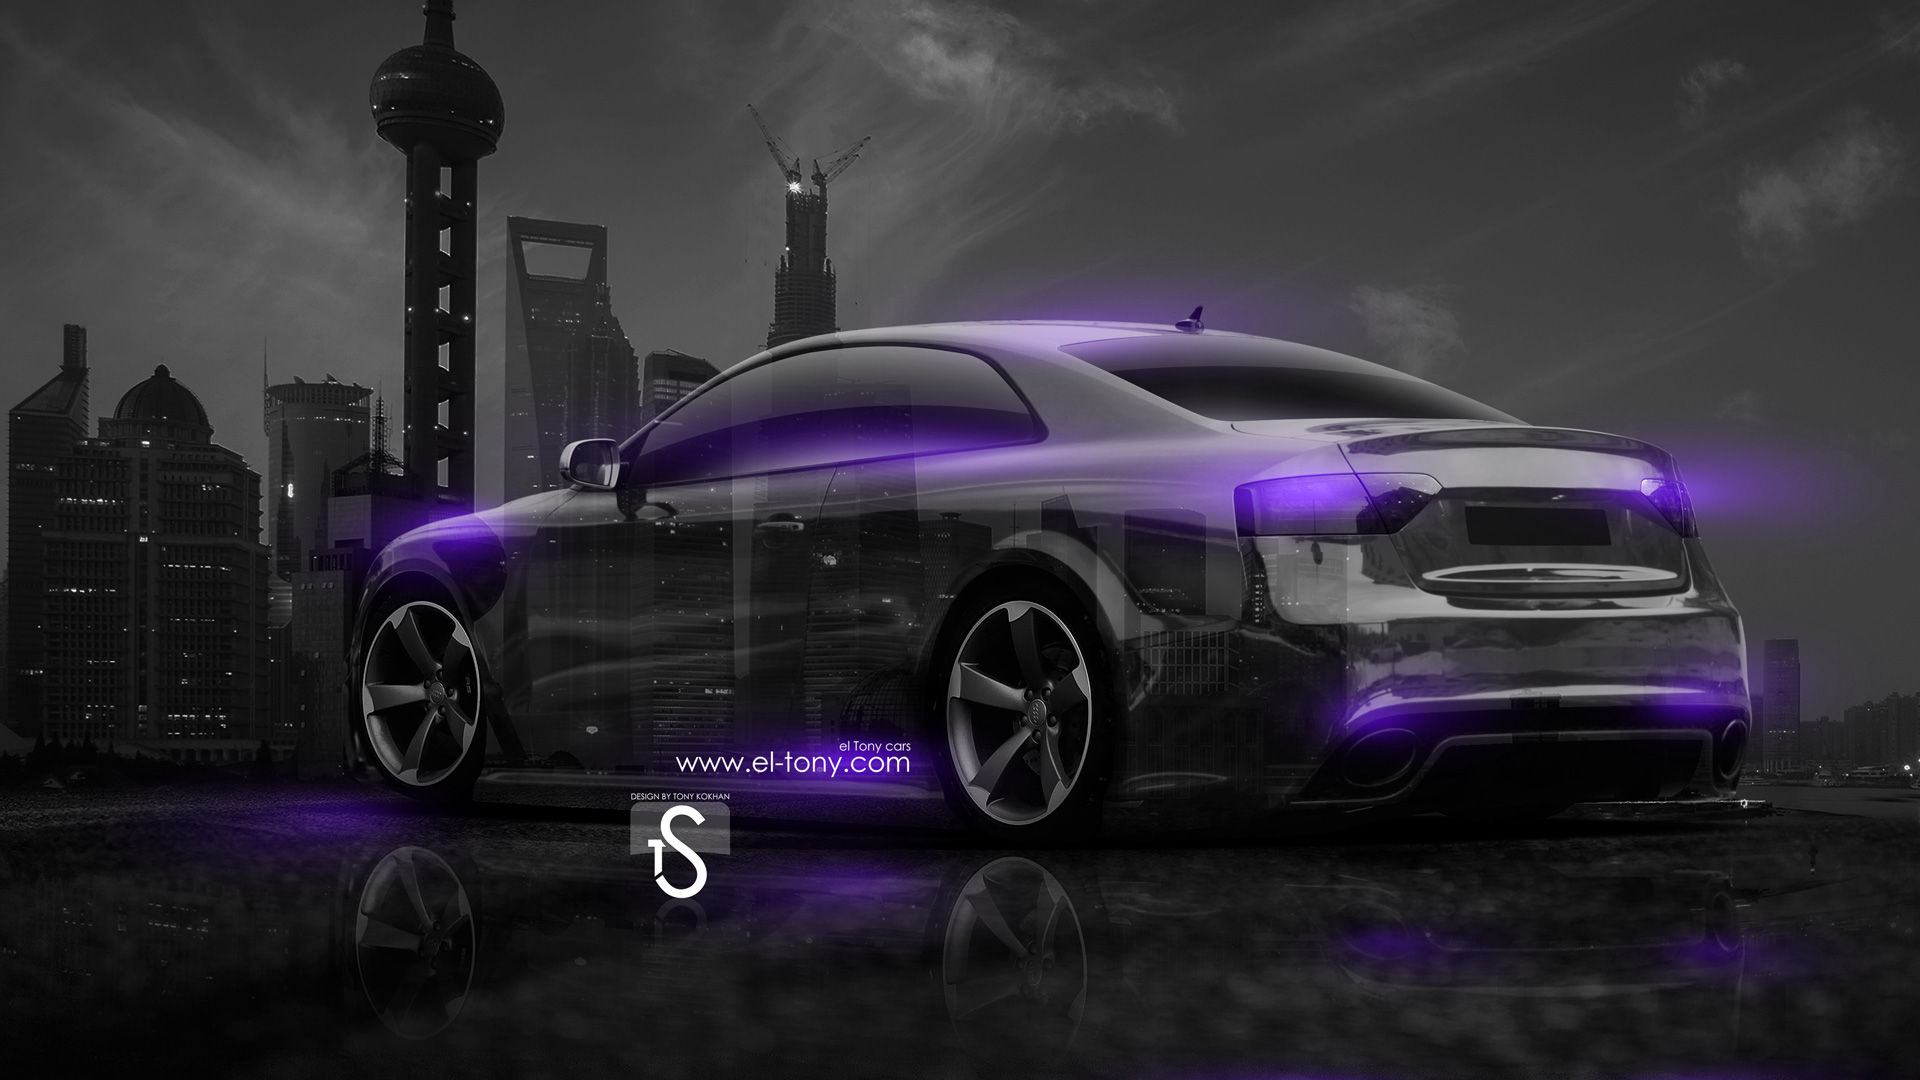 Wonderful Audi RS5 Crystal City Car 2014 Violet Neon